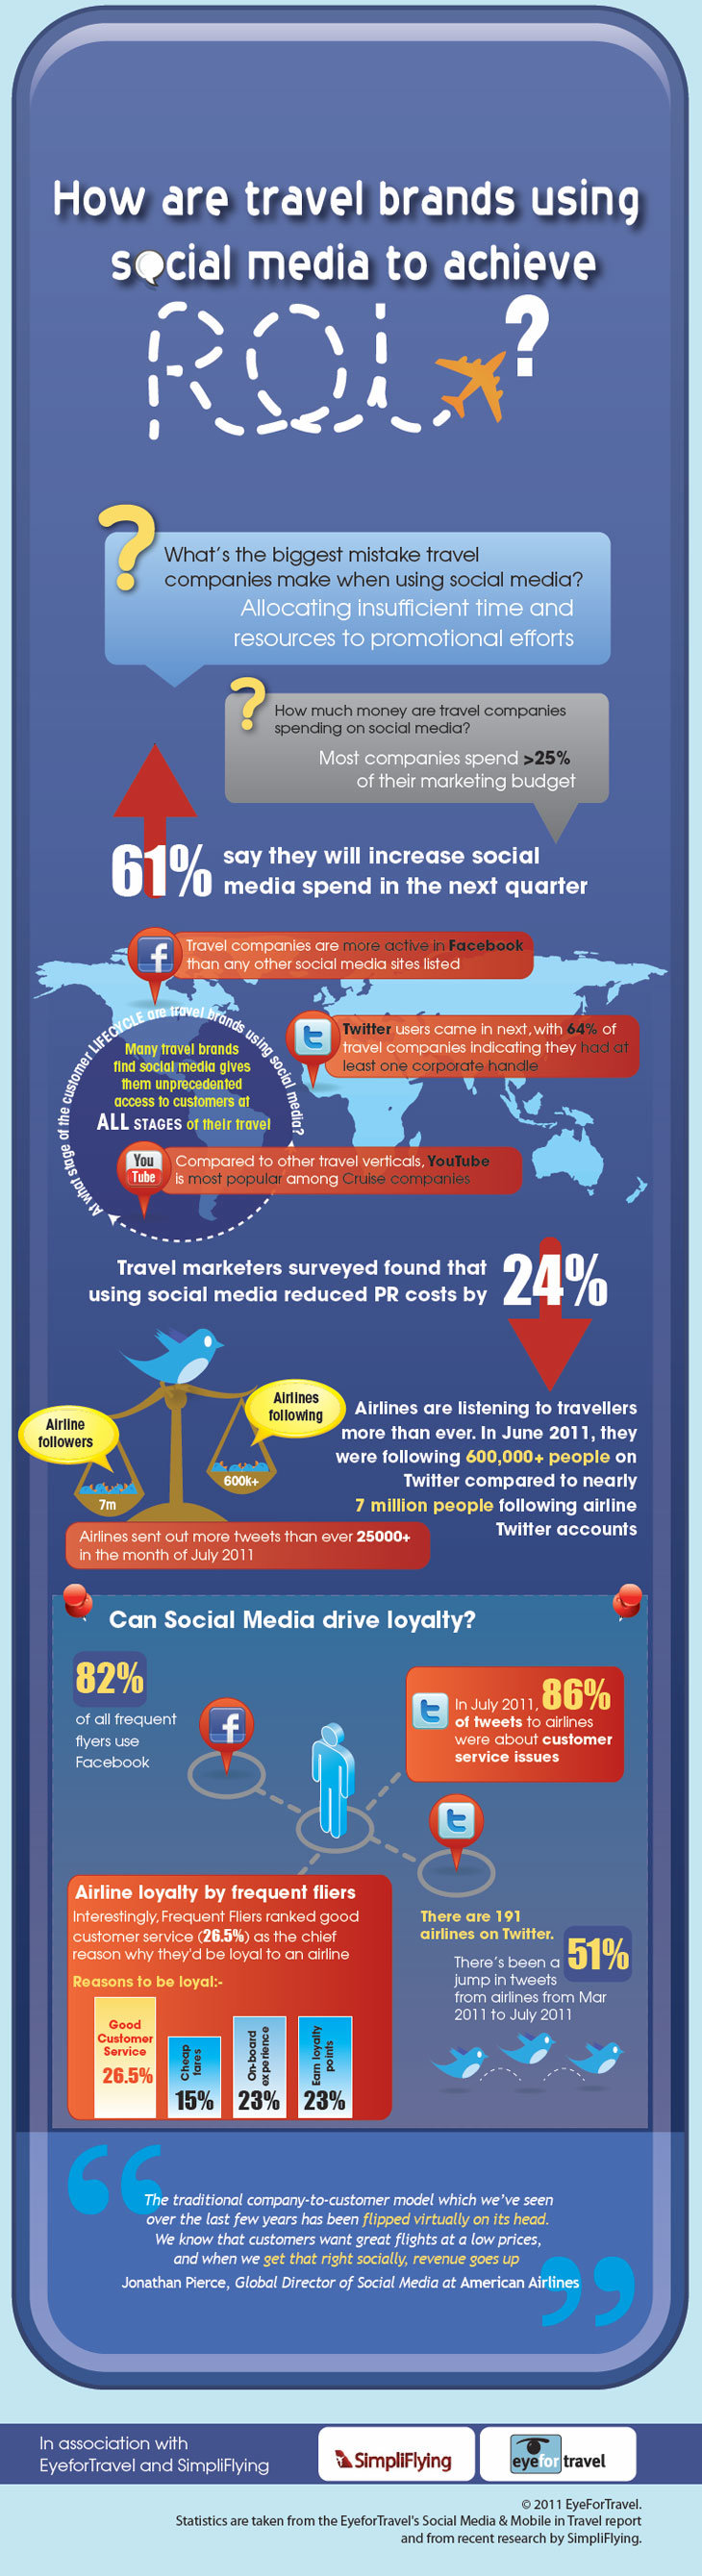 How are travel brands using social media achieve ROI? #infographic